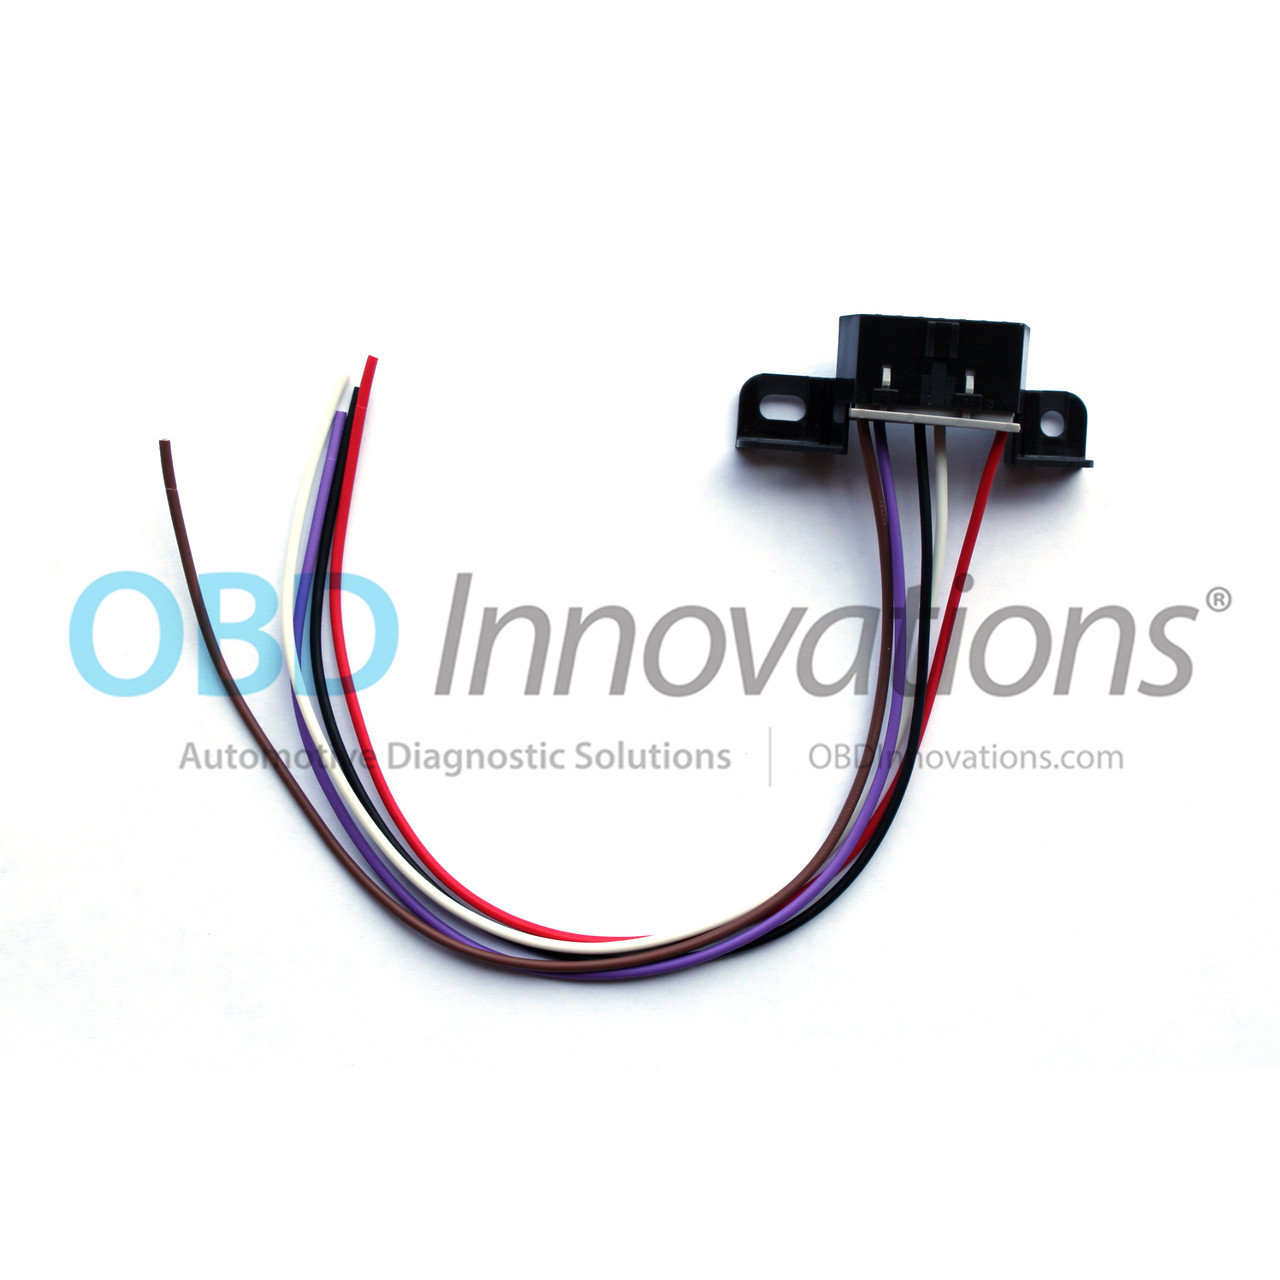 obdii obd2 j1962 aldl wiring harness connector pigtail for gm ls1 rh obdinnovations com Wiring Harness Terminals and Connectors pigtail wiring harness diagram